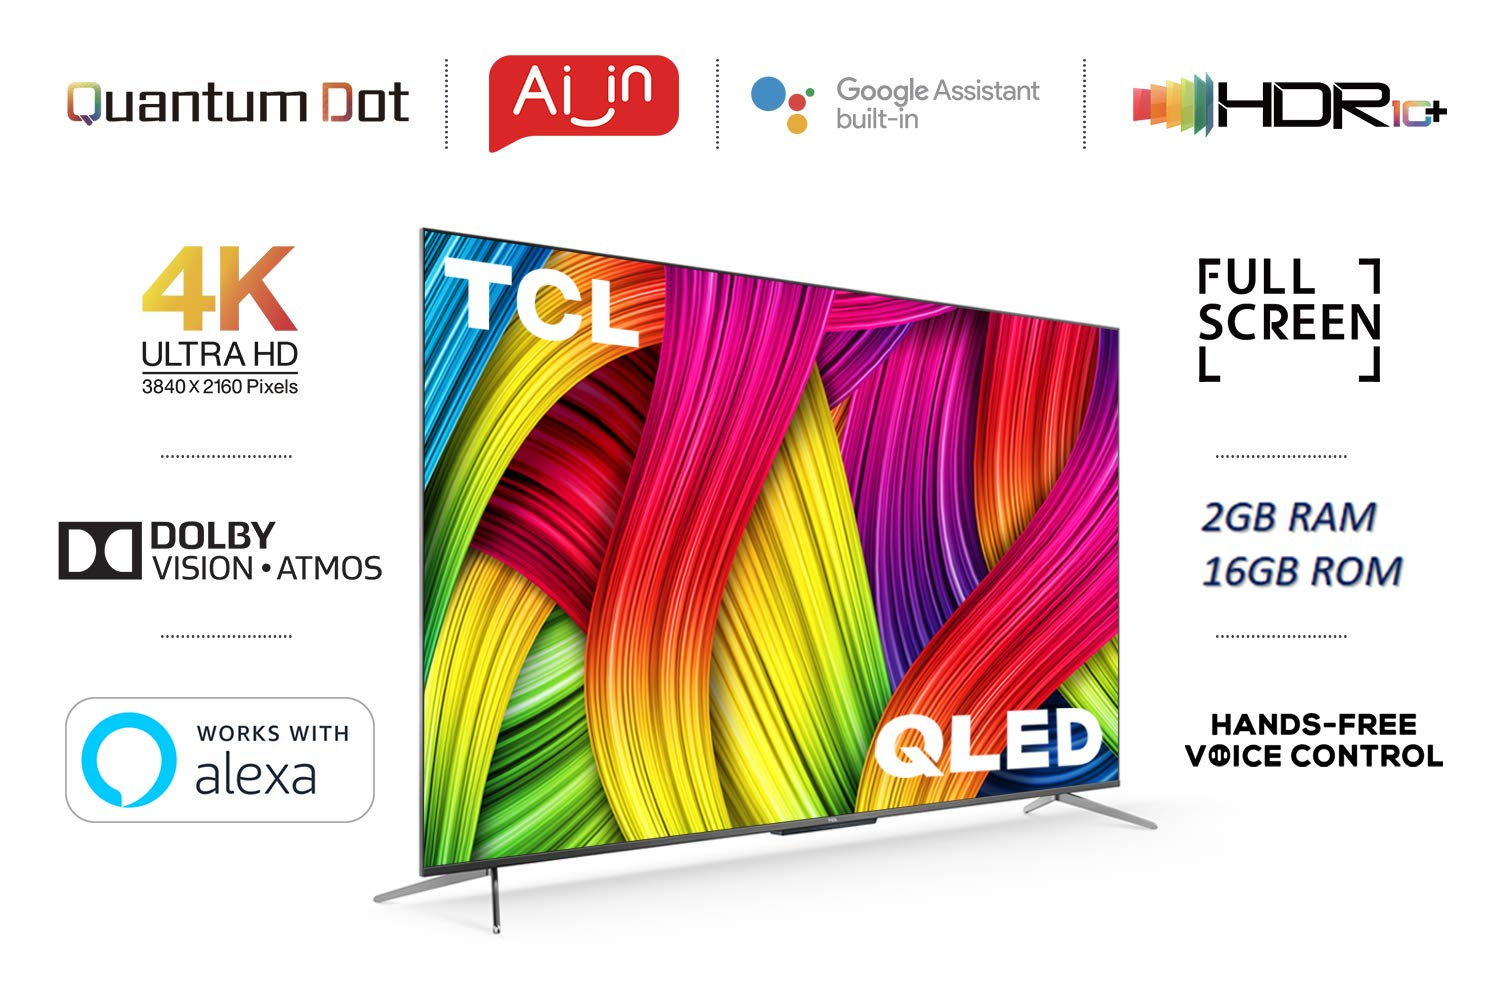 TCL 125.7 cm (50 inches) 4K Ultra HD Certified Android Smart QLED TV 50C715